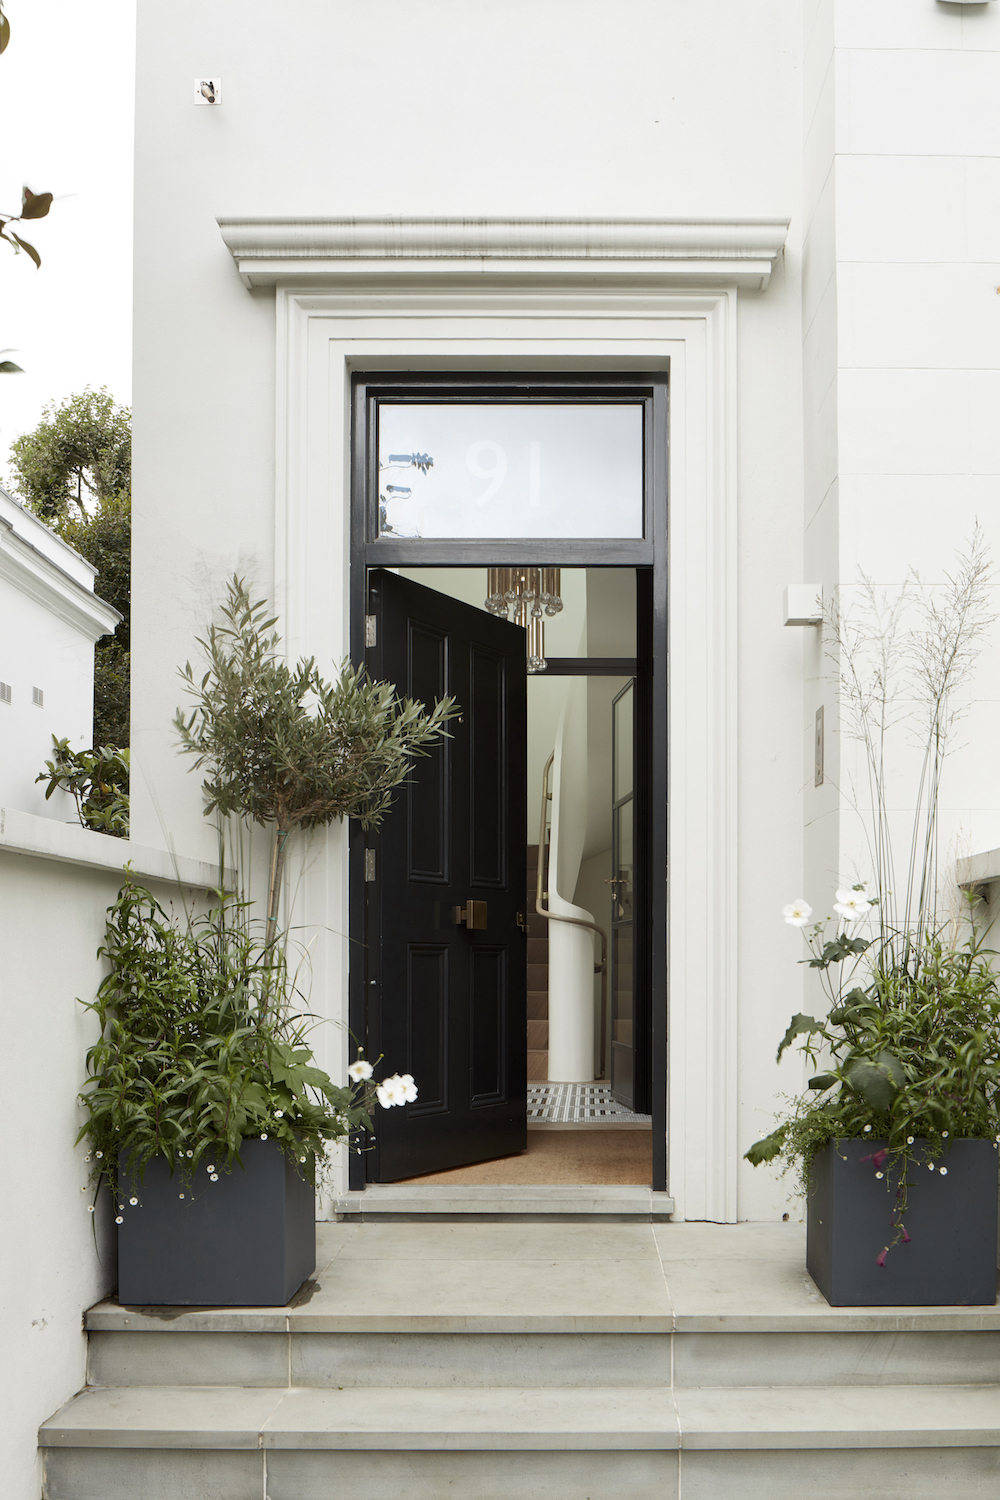 Explore A Light-Filled Family Home In London's Holland Park